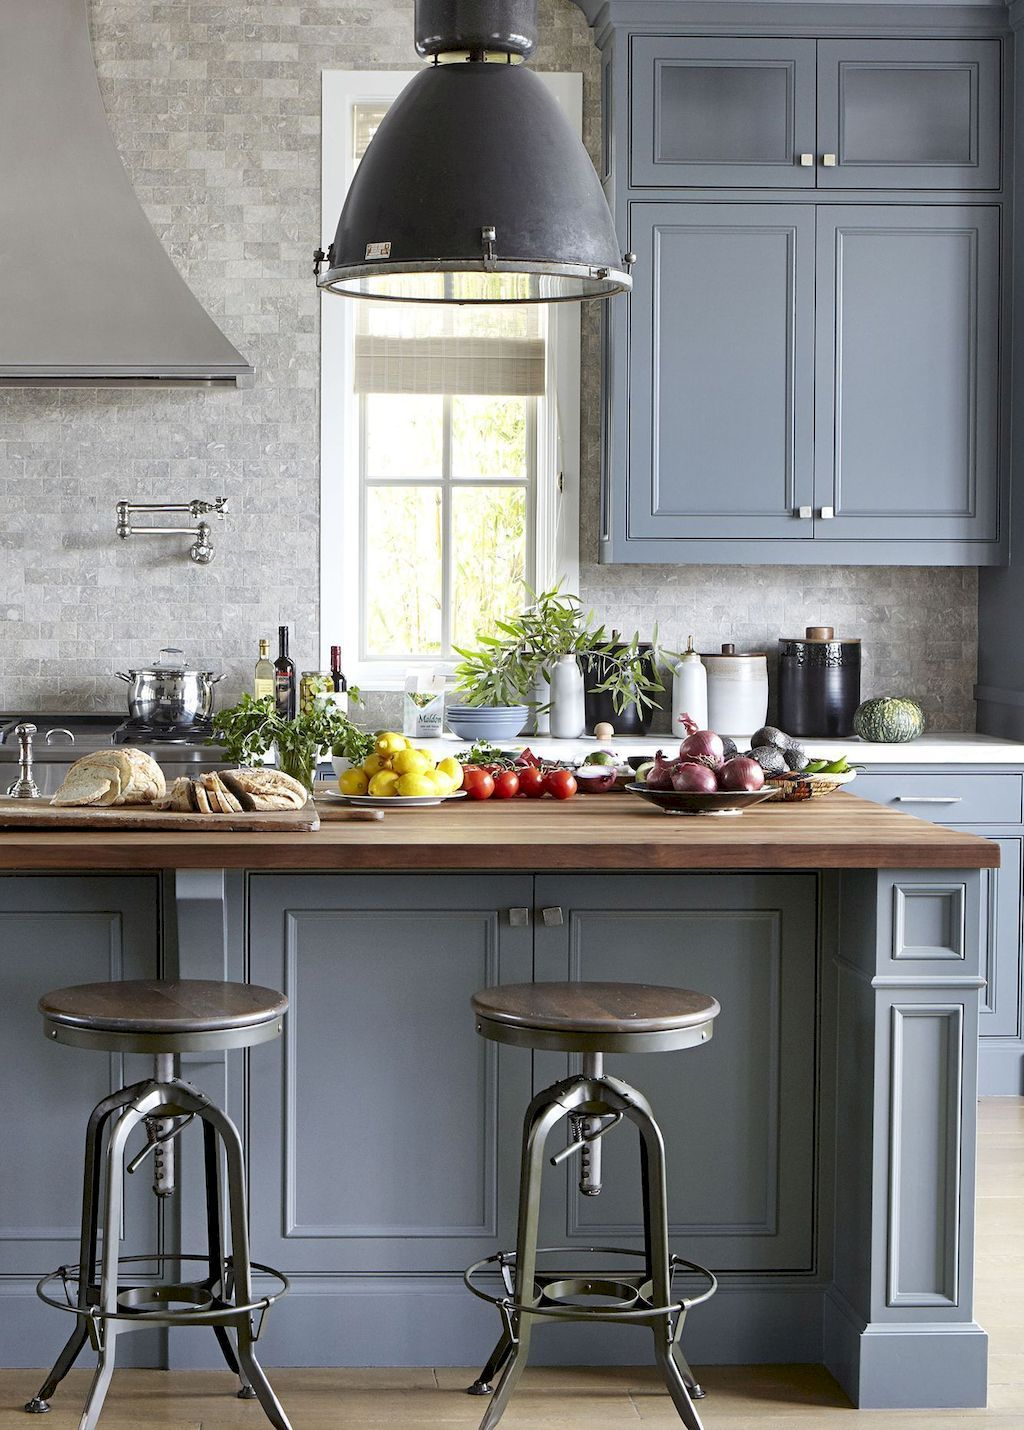 65 Gray Kitchen Cabinet Makeover Design Ideas Grey Kitchen Designs Blue Gray Kitchen Cabinets Painted Kitchen Cabinets Colors